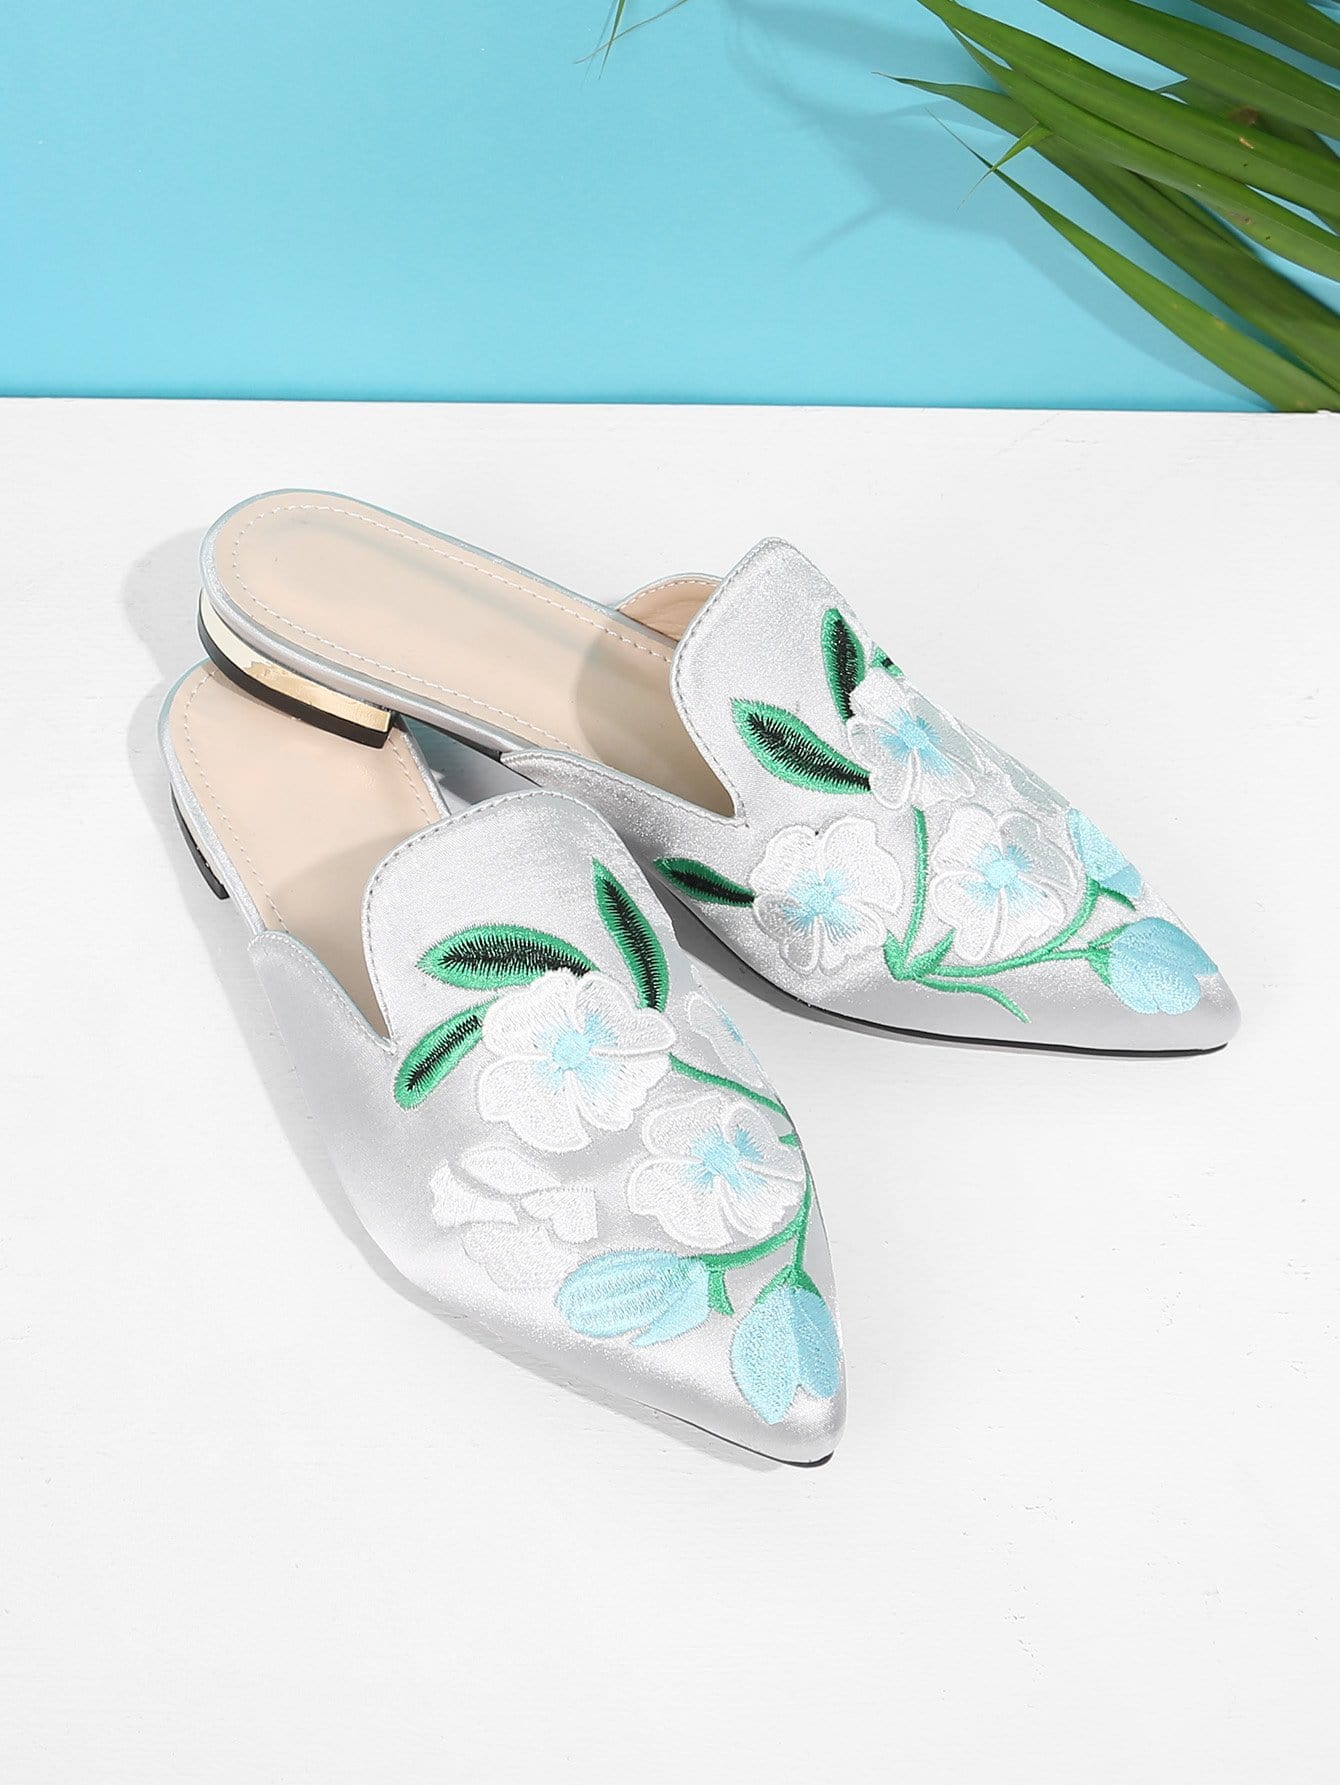 Floral Embroidered Flat Mules vintage women flats cloth shoes chinese wedding mary janes floral embroidered casual soft canvas dance ballet flat for woman